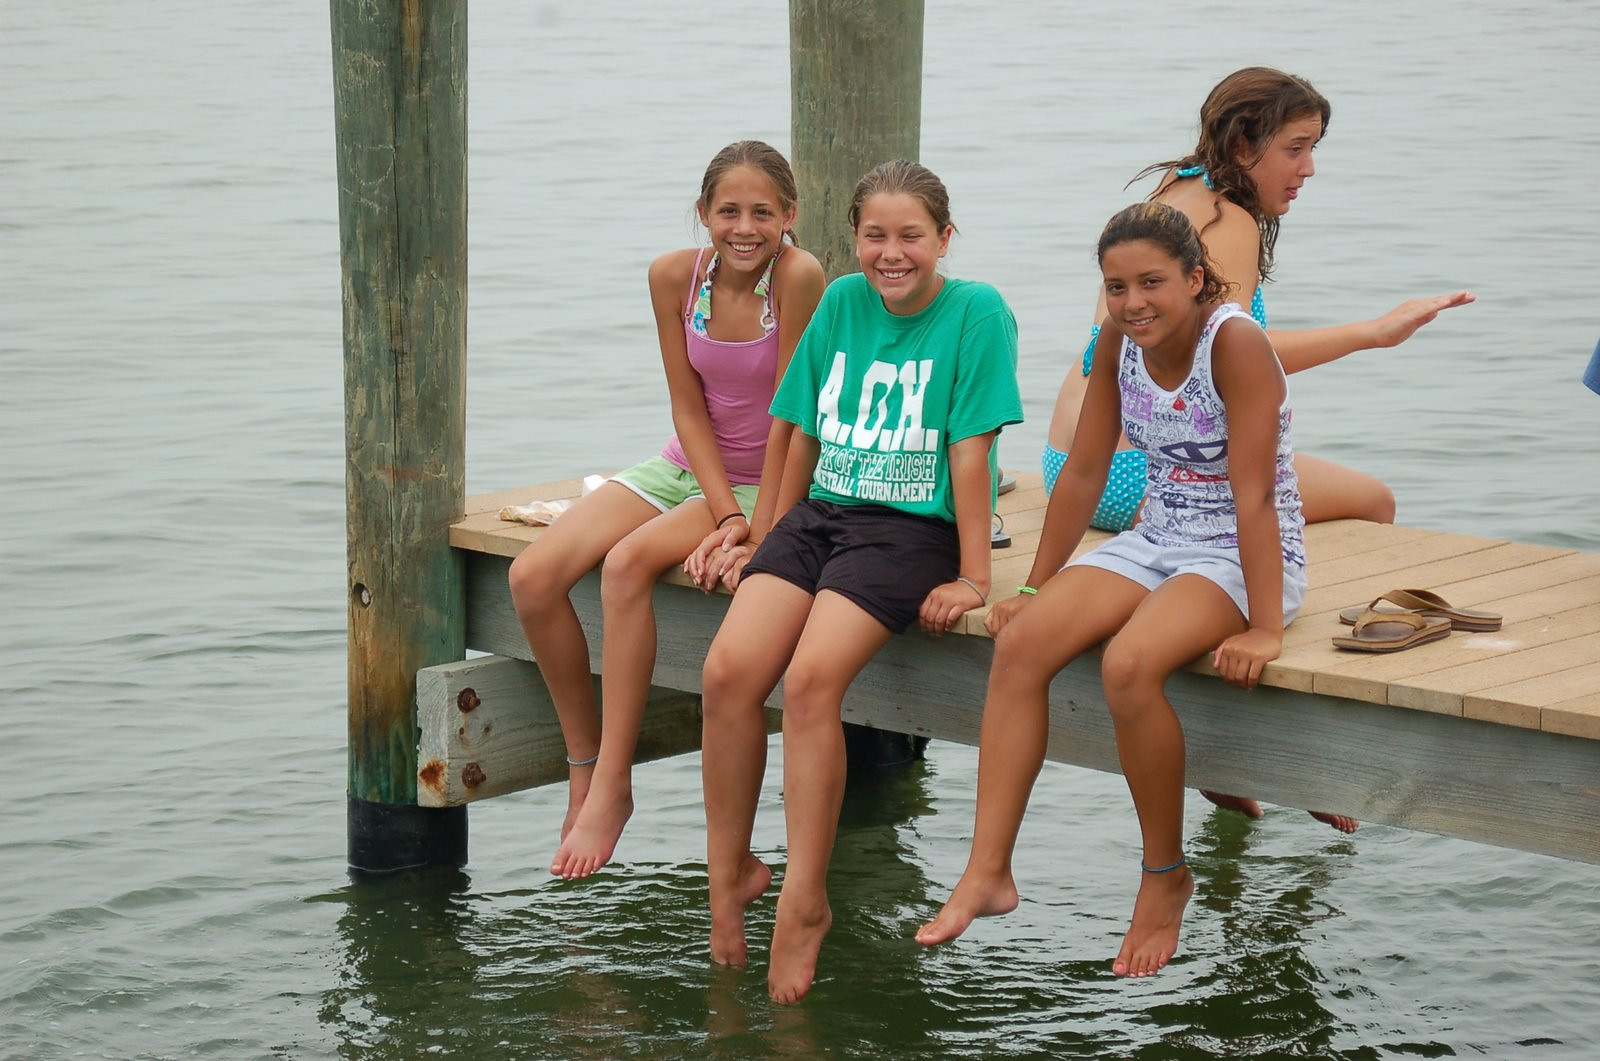 Campers on the dock at Cayo Costa State Park.